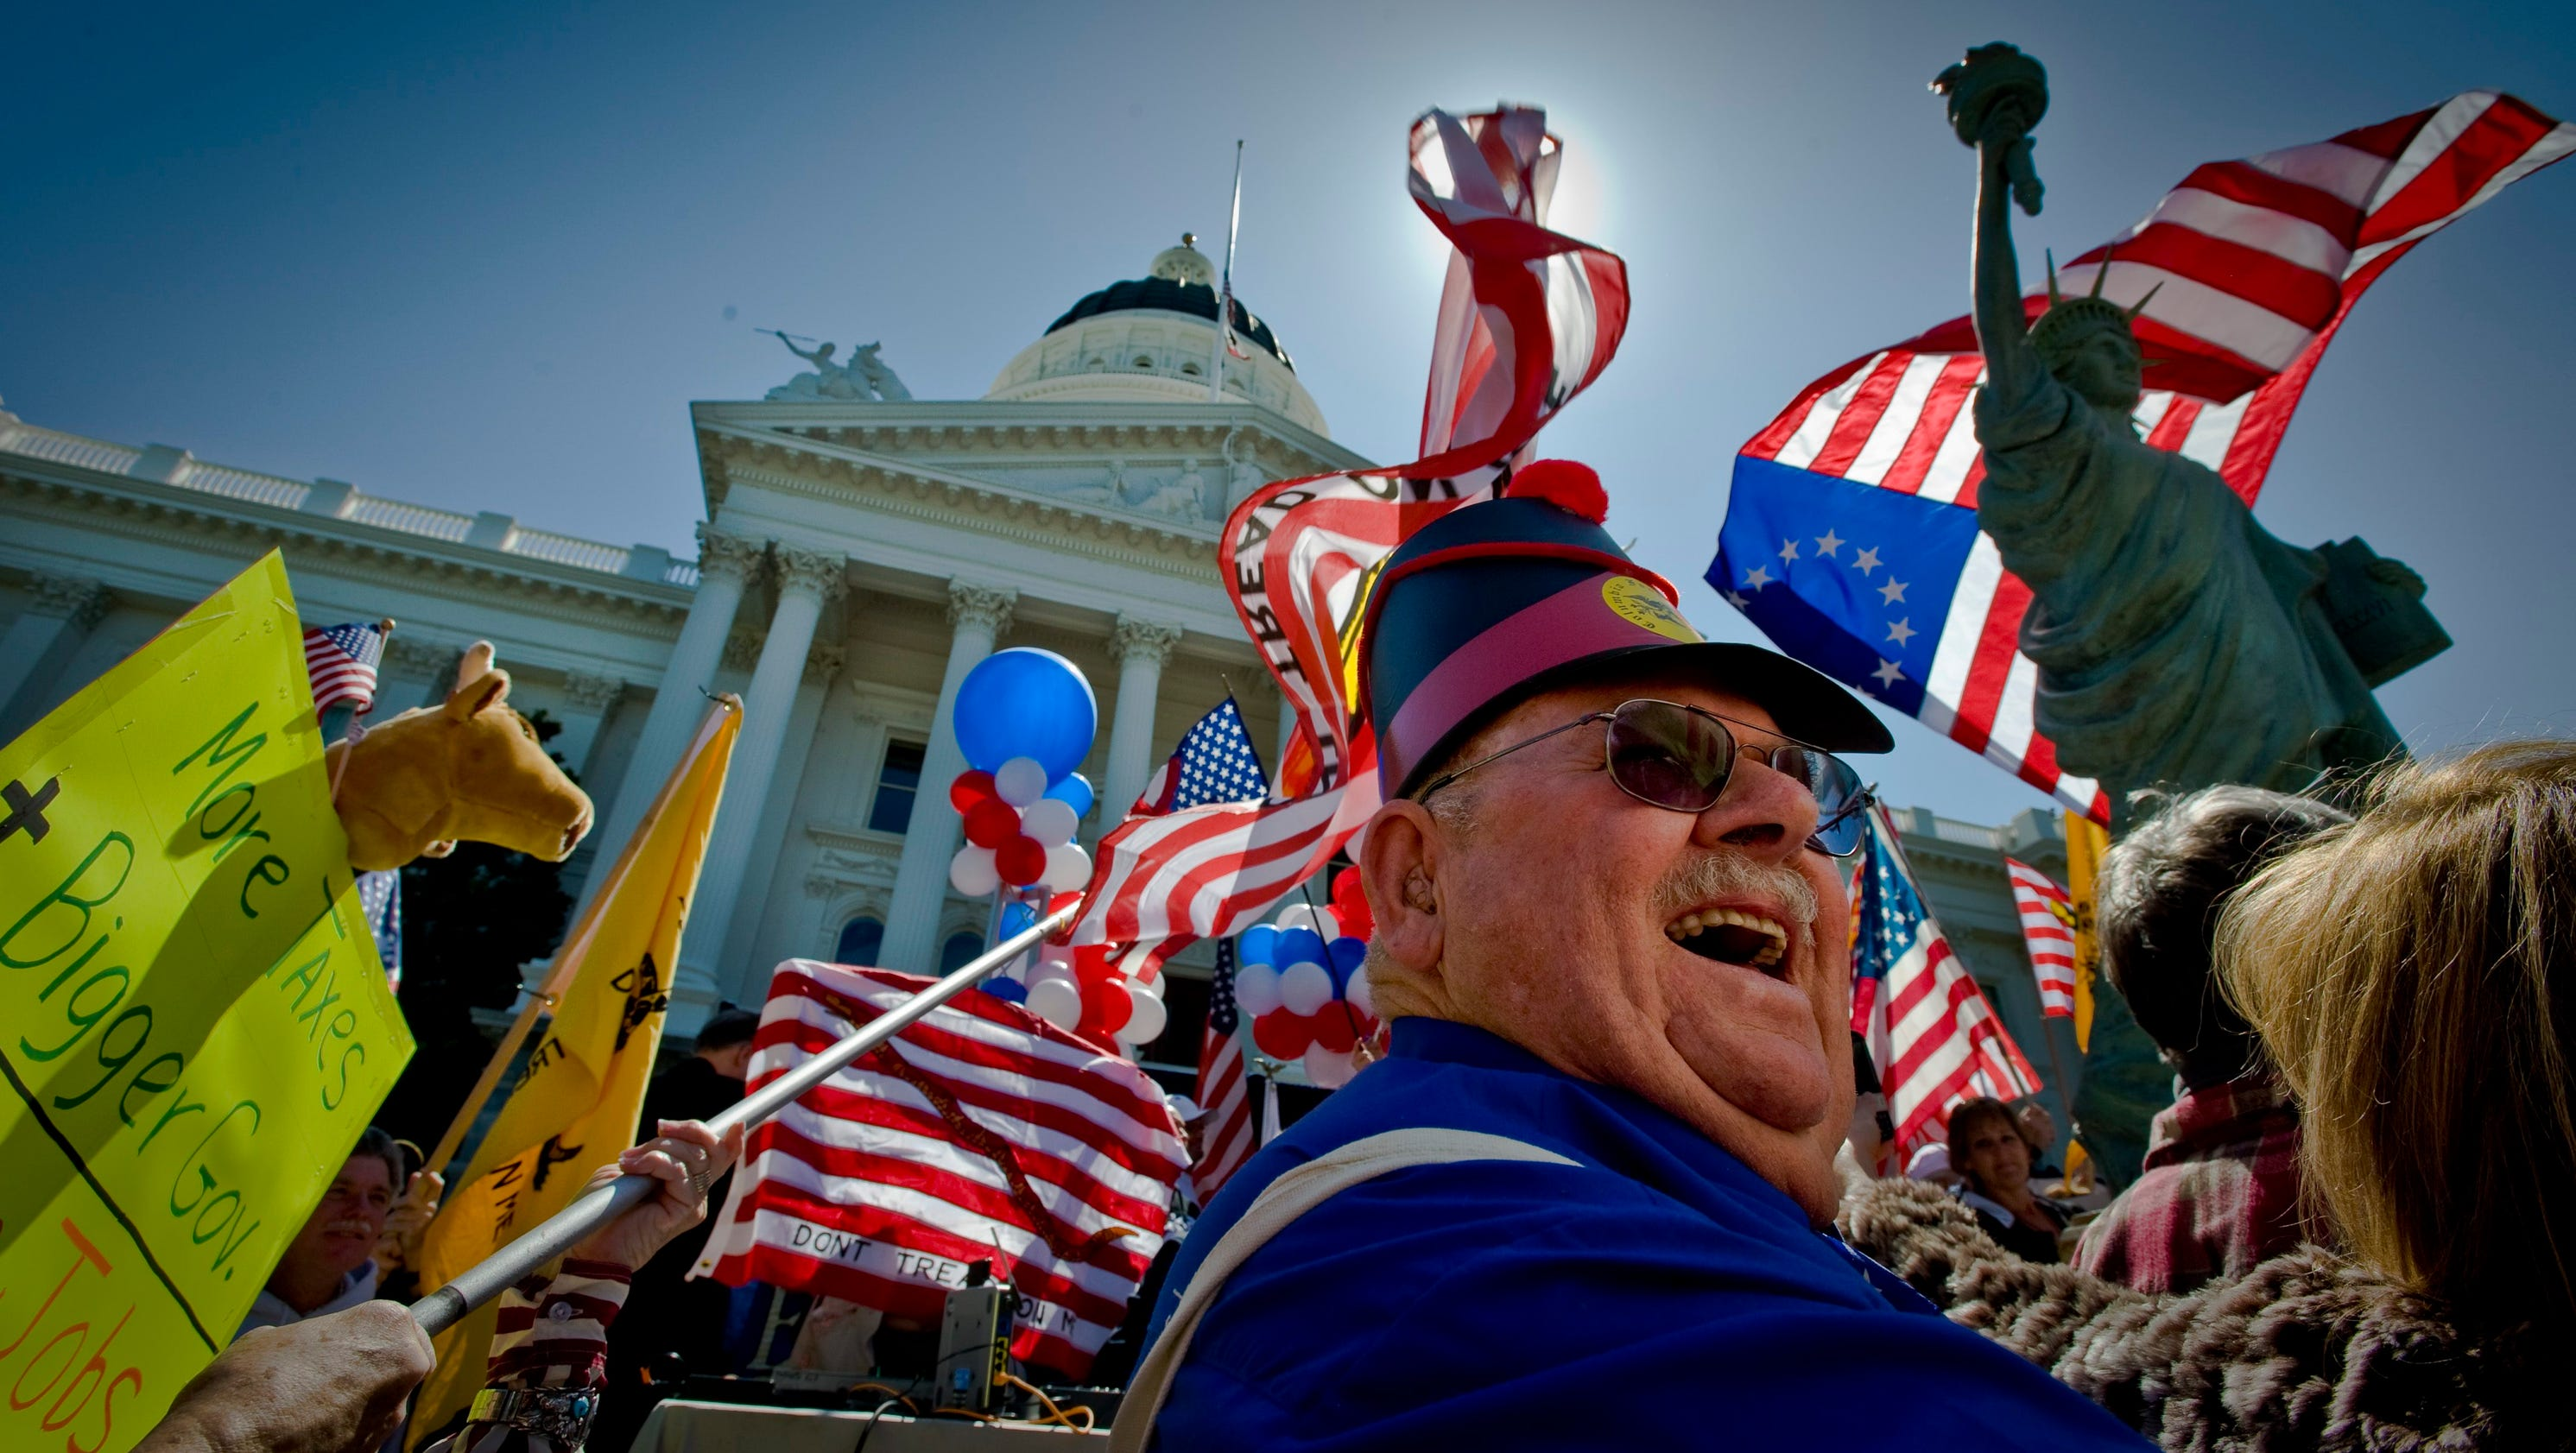 tea party movement essay Liberals must learn tea party tactics, say creators of indivisible guide as a congressional staffer, sarah dohl saw tea partiers disrupt and dominate politics now she wants progressives to learn from the conservative movement about 798 results for tea party movement.